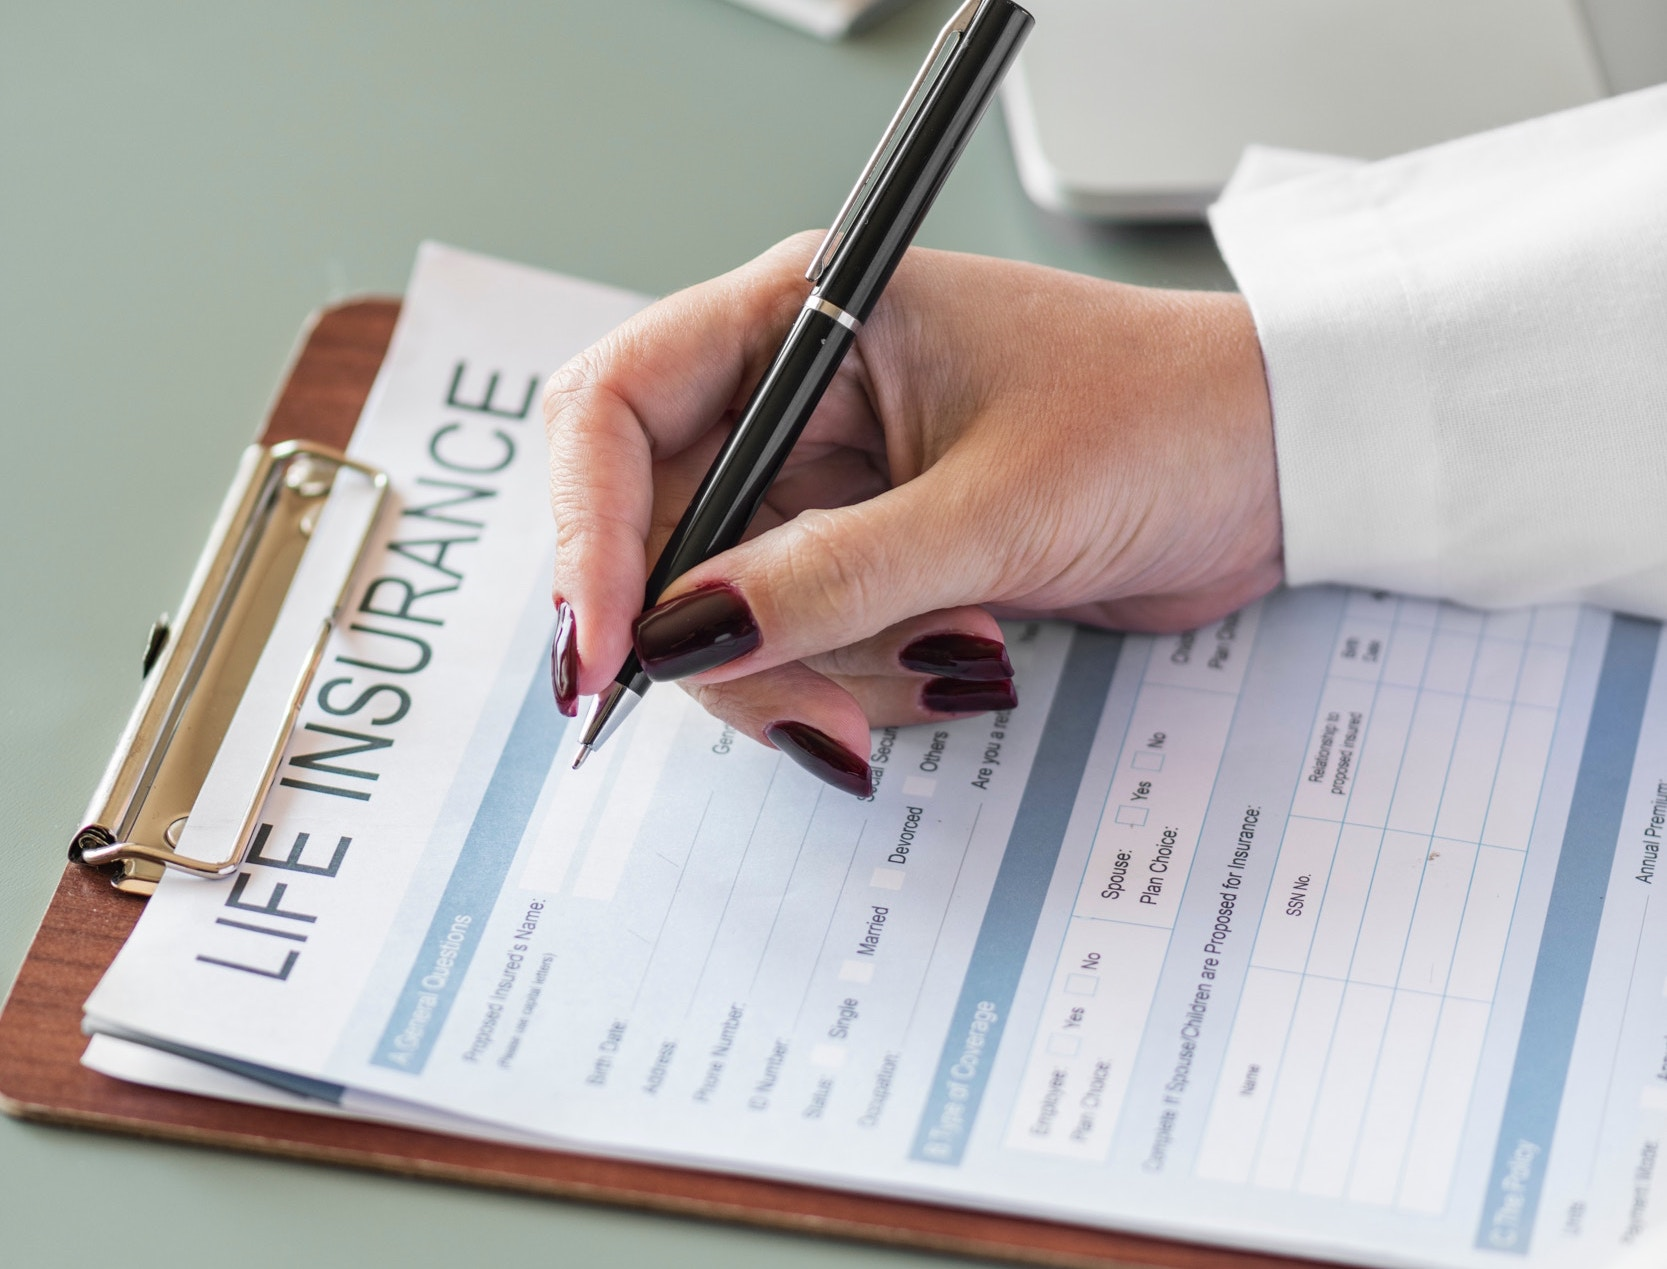 White woman with wine colored nails holds a pen while she fills out a life insurance form